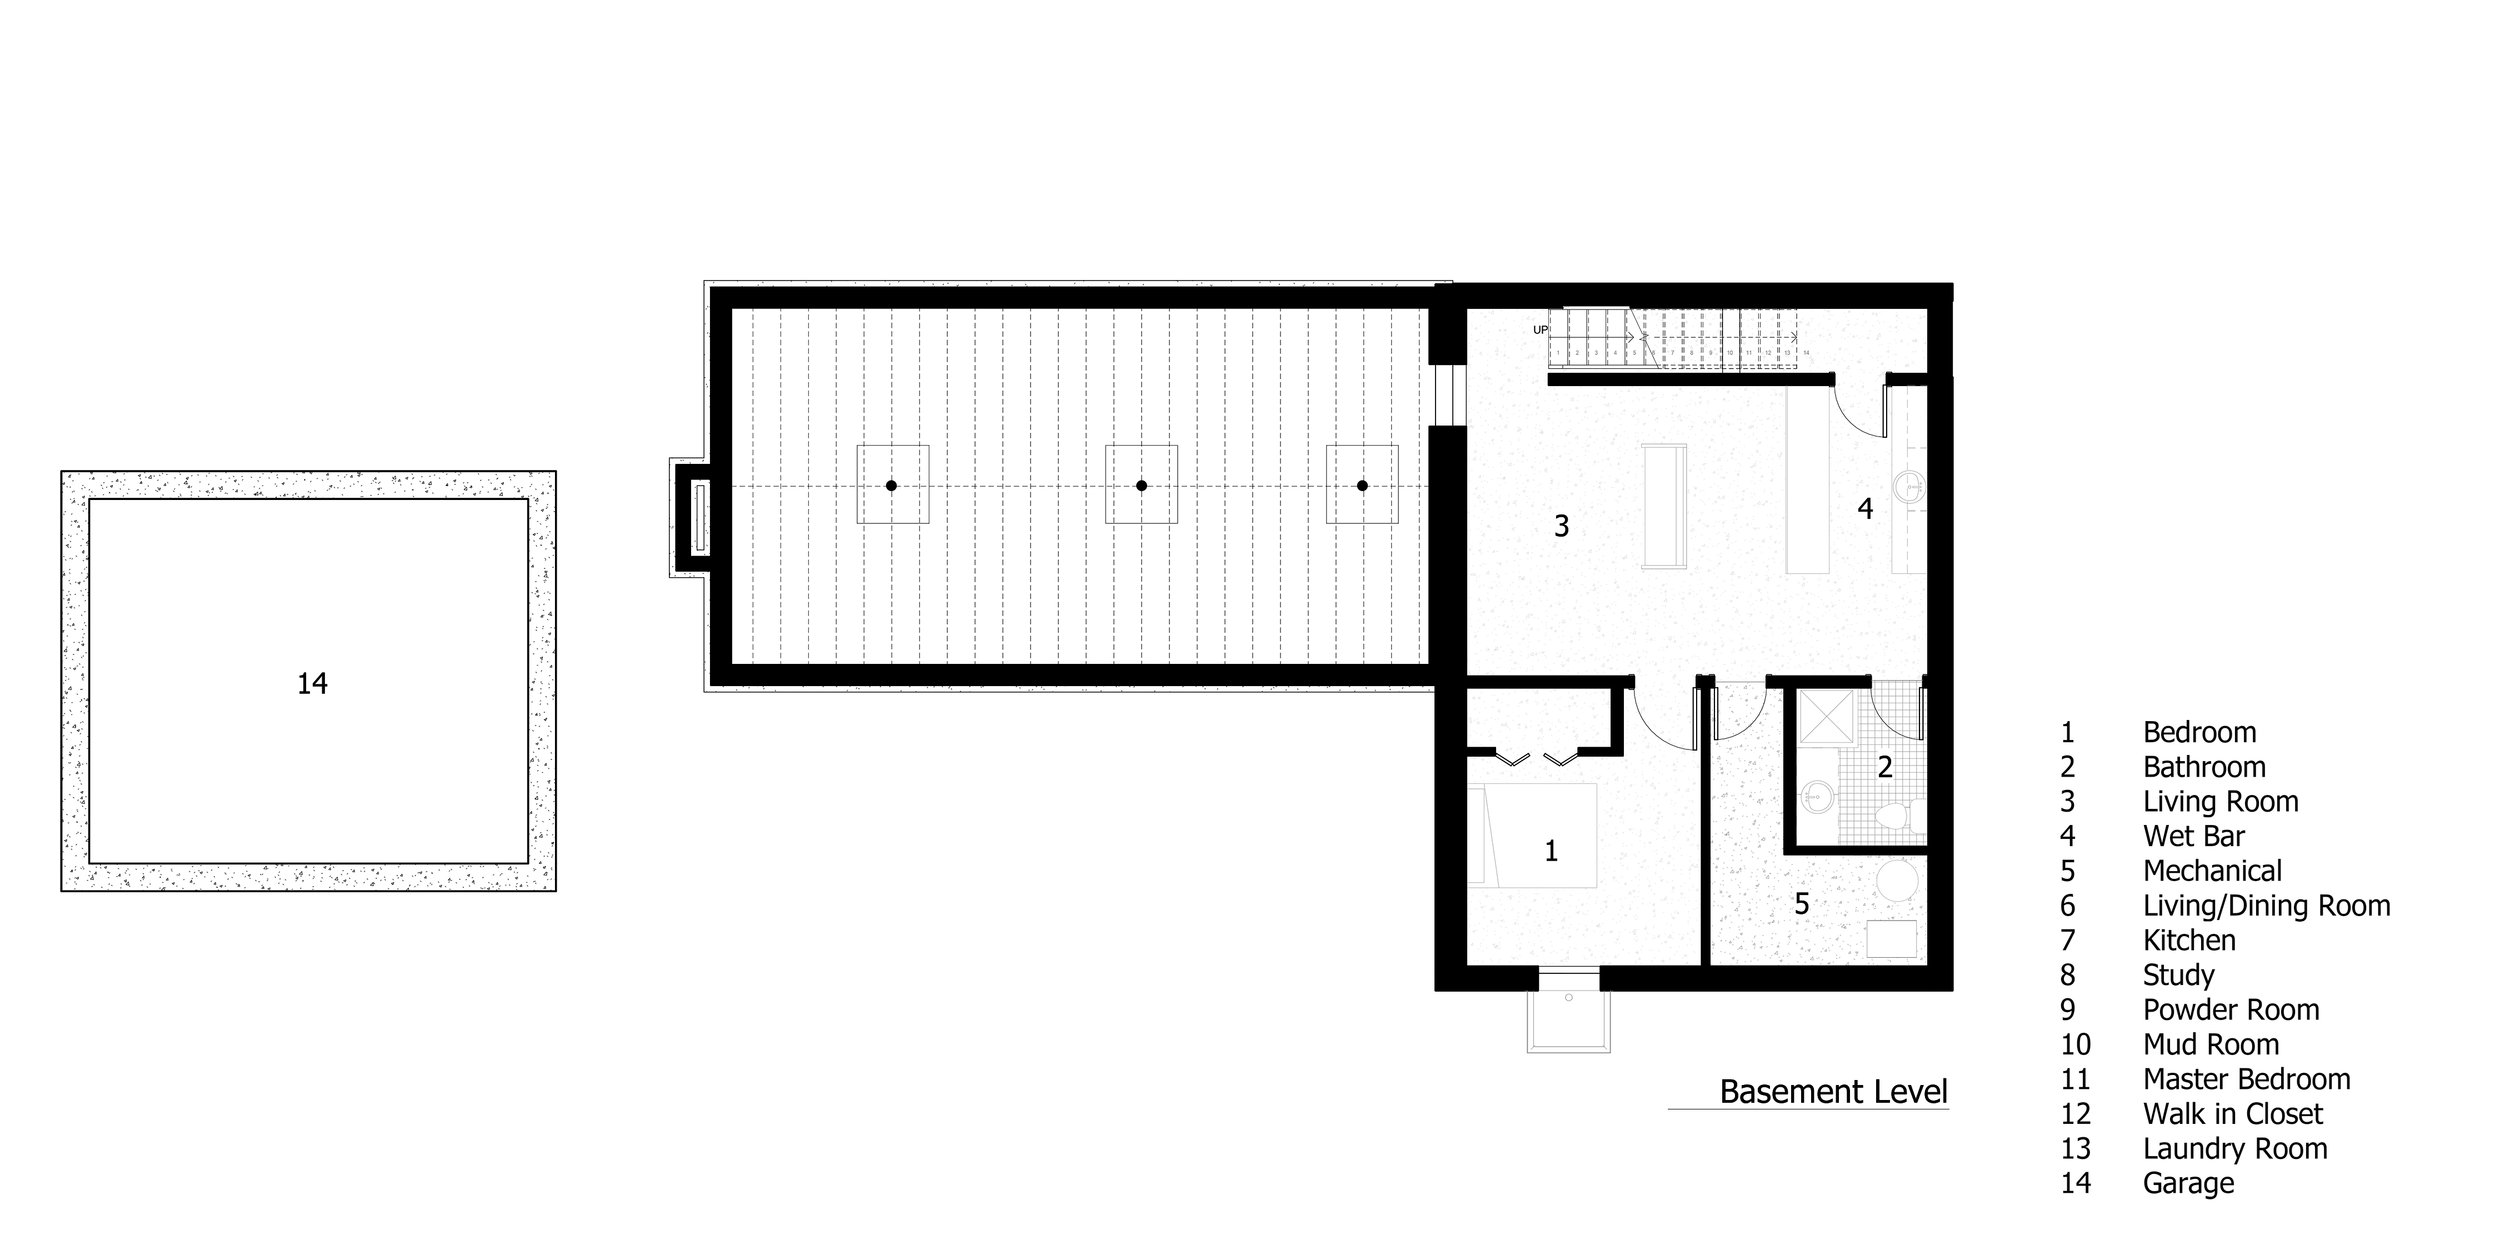 Graphic Plan Basement FINAL 20181211.jpg